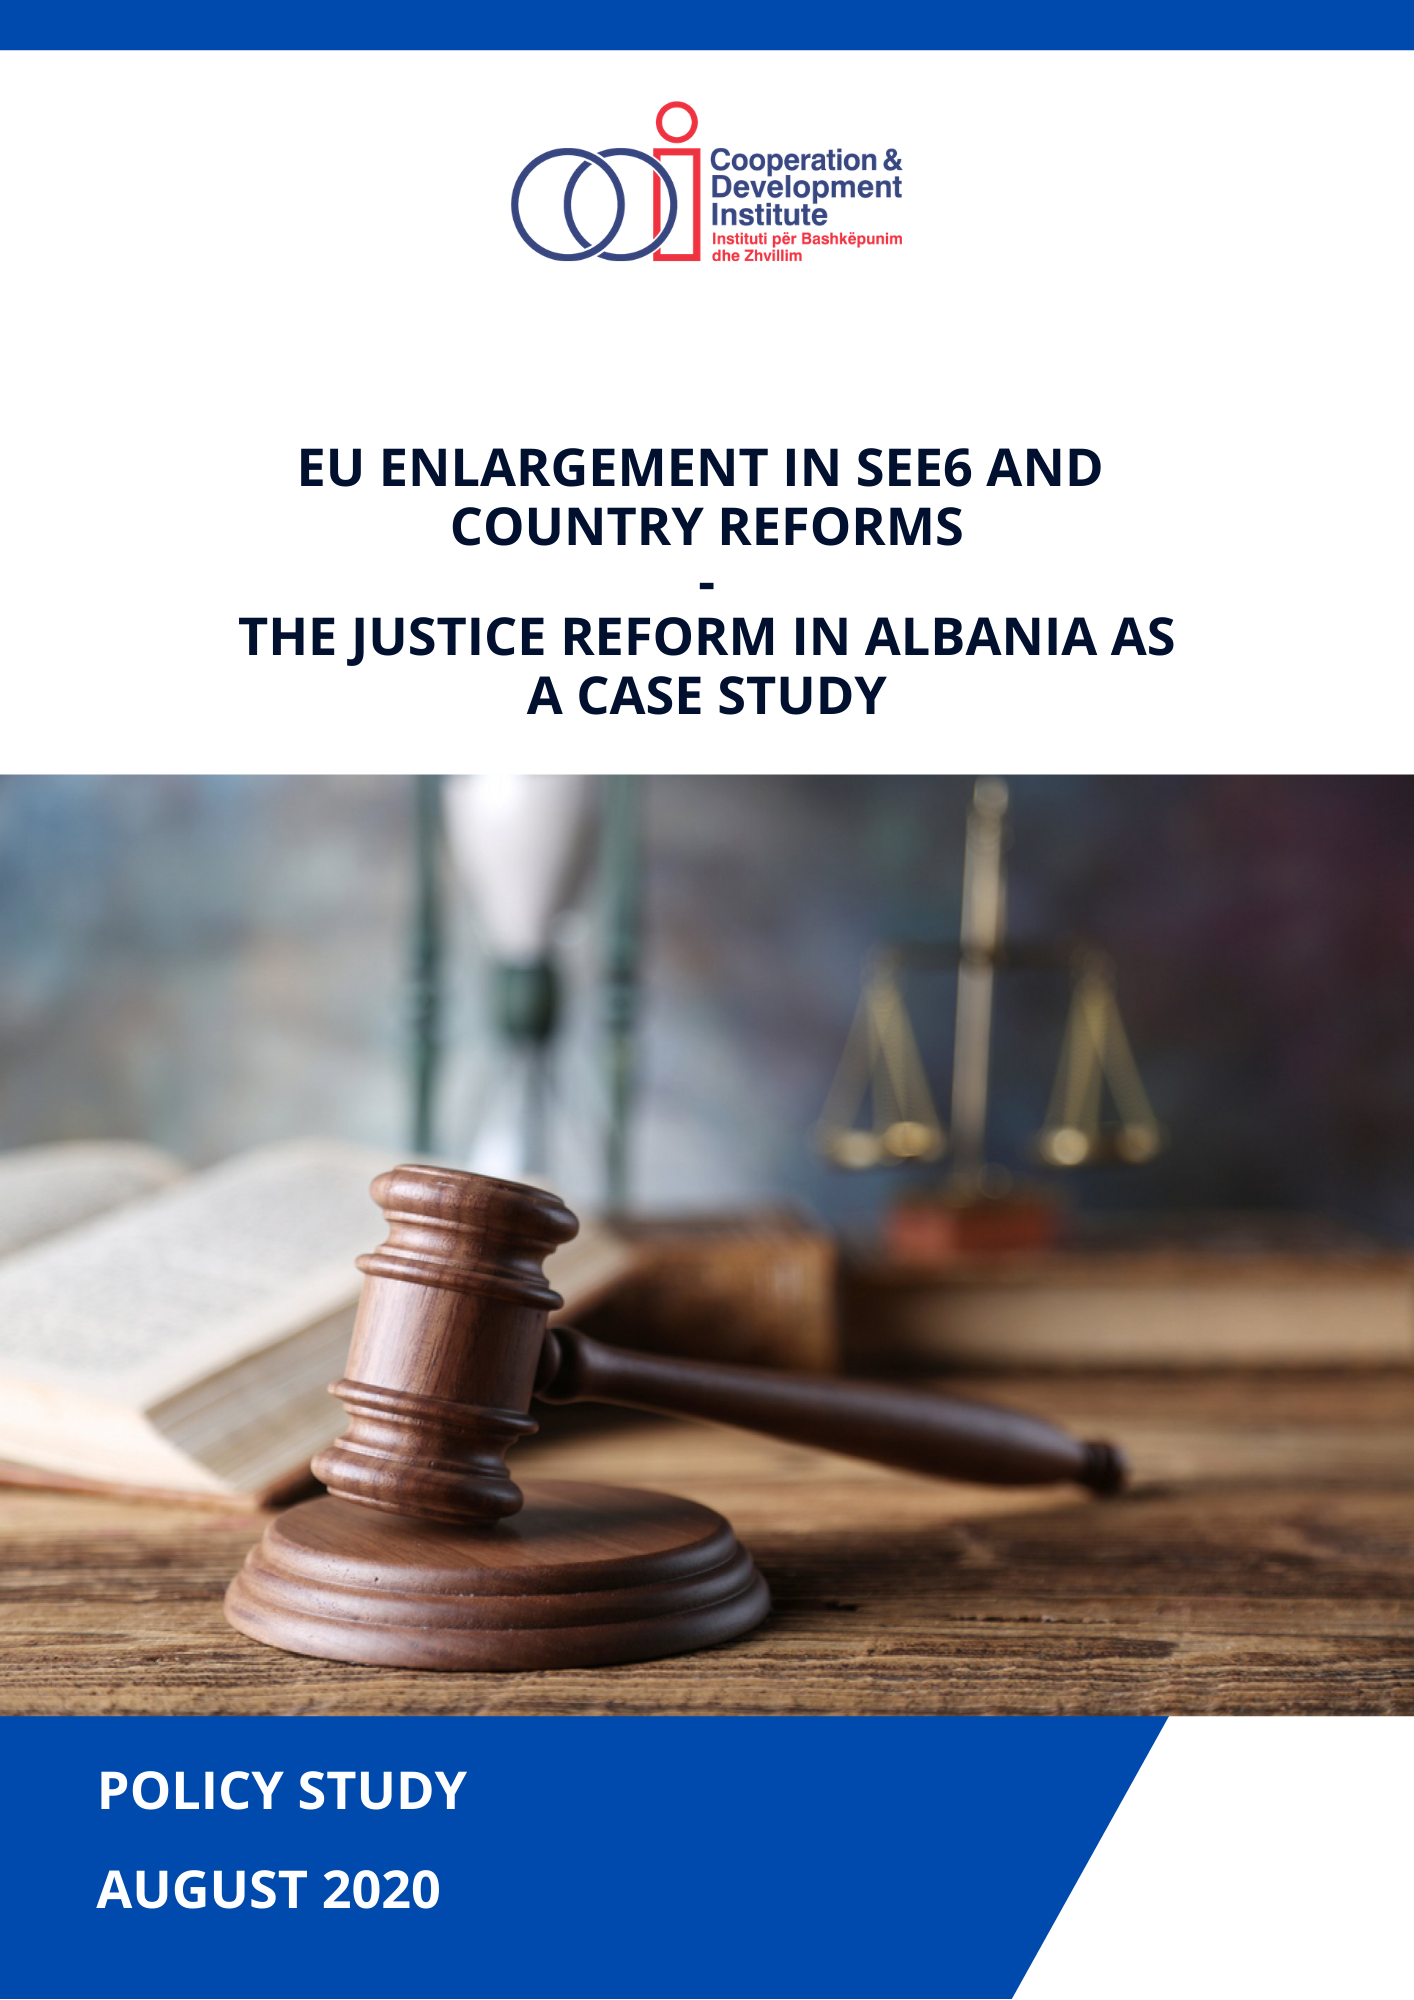 EU ENLARGEMENT IN SEE6 AND COUNTRY REFORMS – THE JUSTICE REFORM IN ALBANIA AS A CASE STUDY